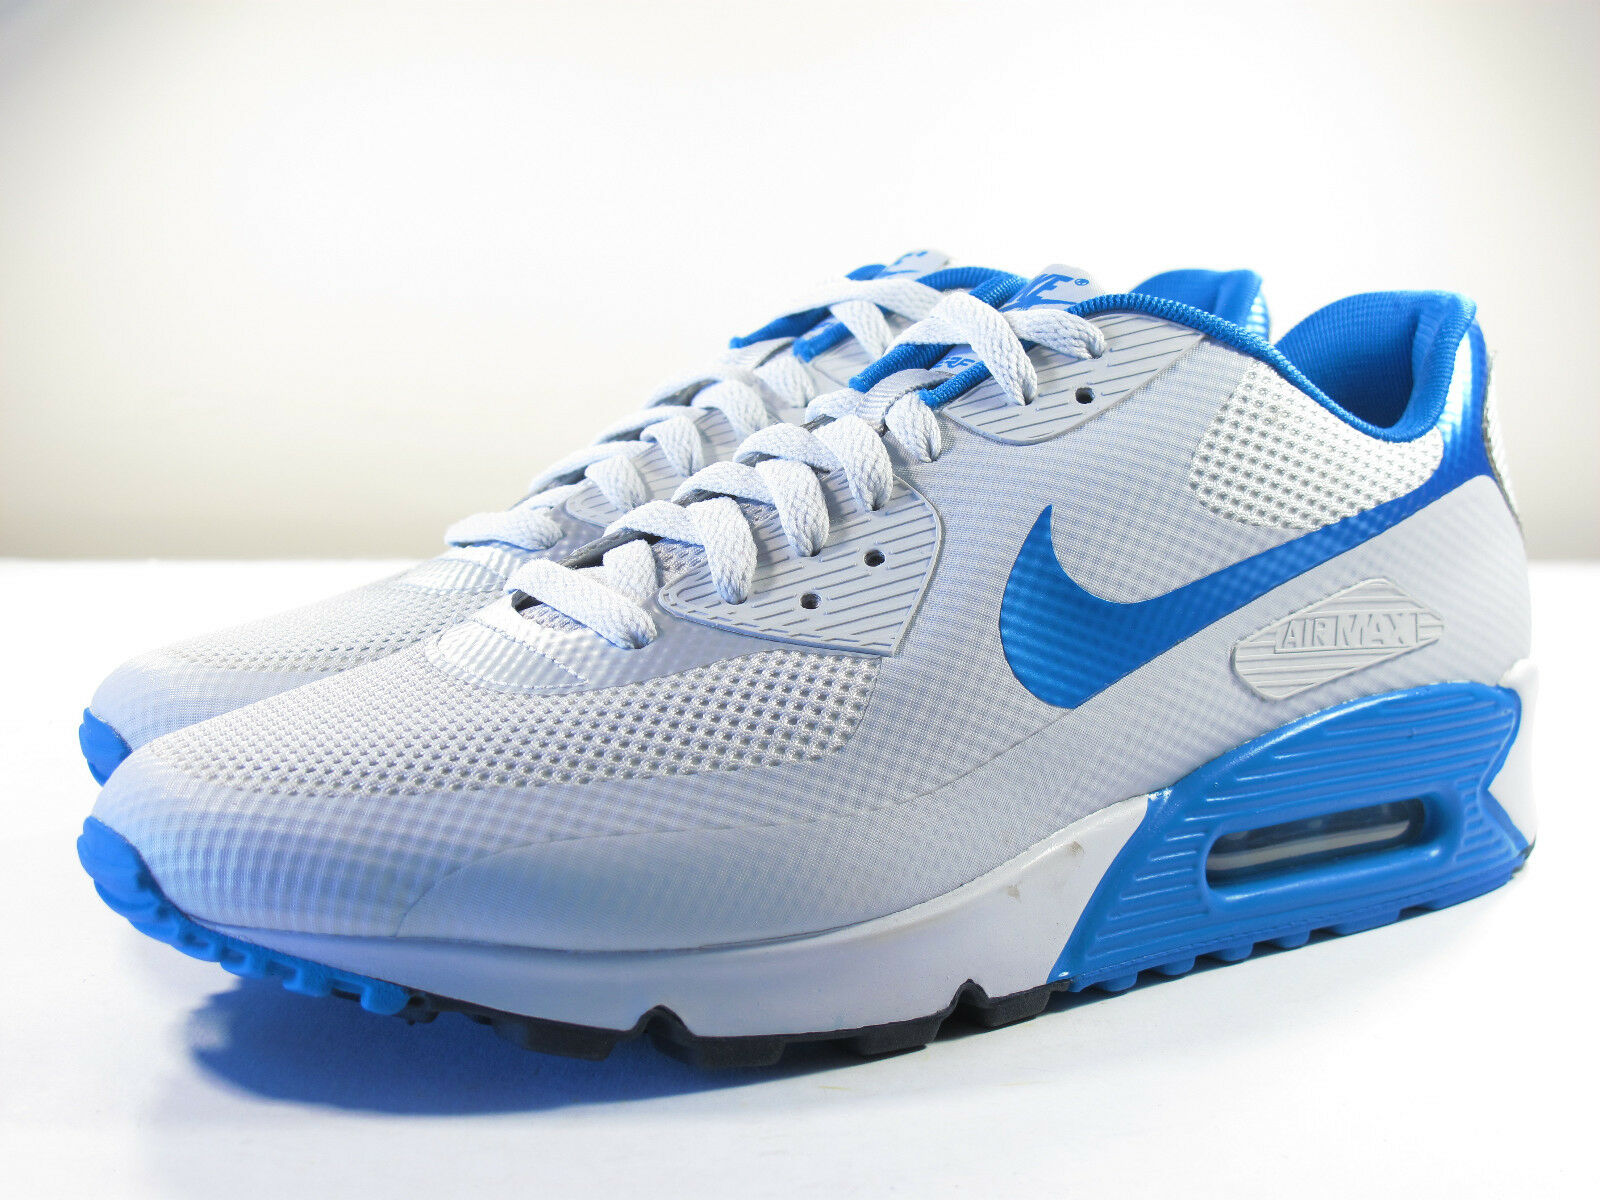 DS NIKE 2011 SAMPLE AIR MAX 90 HYPERFUSE 9 PURE PLATINUM DYNAMIC BLUE 9 HYPERFUSE MOON 1 95 07a9d1